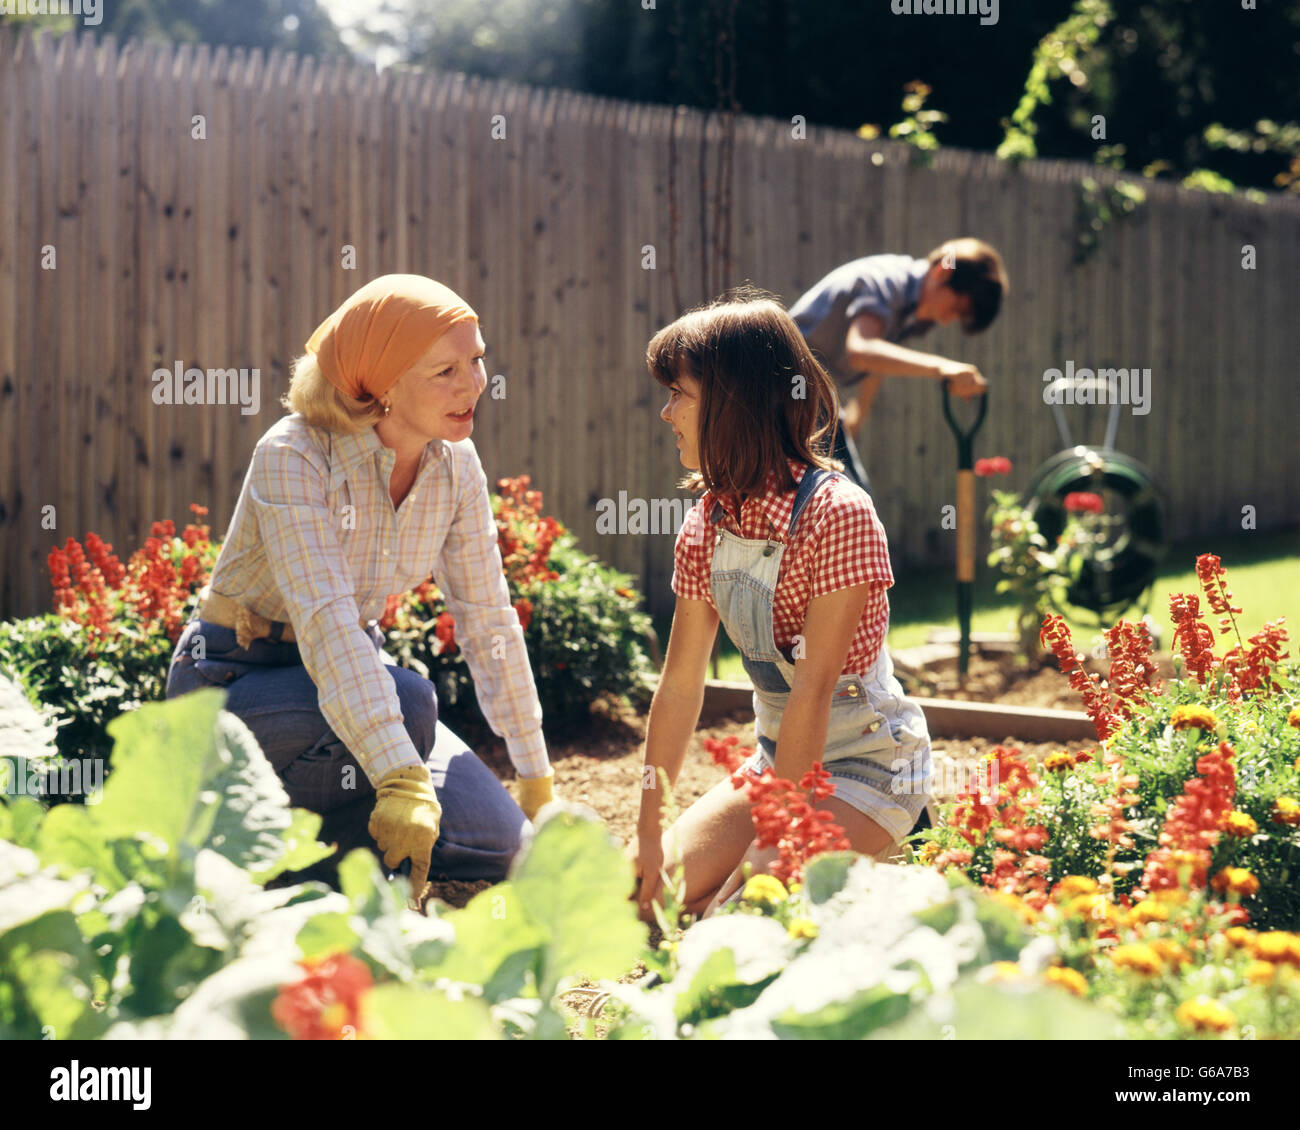 1970s MOTHER DAUGHTER AND SON GARDENING IN BACKYARD - Stock Image